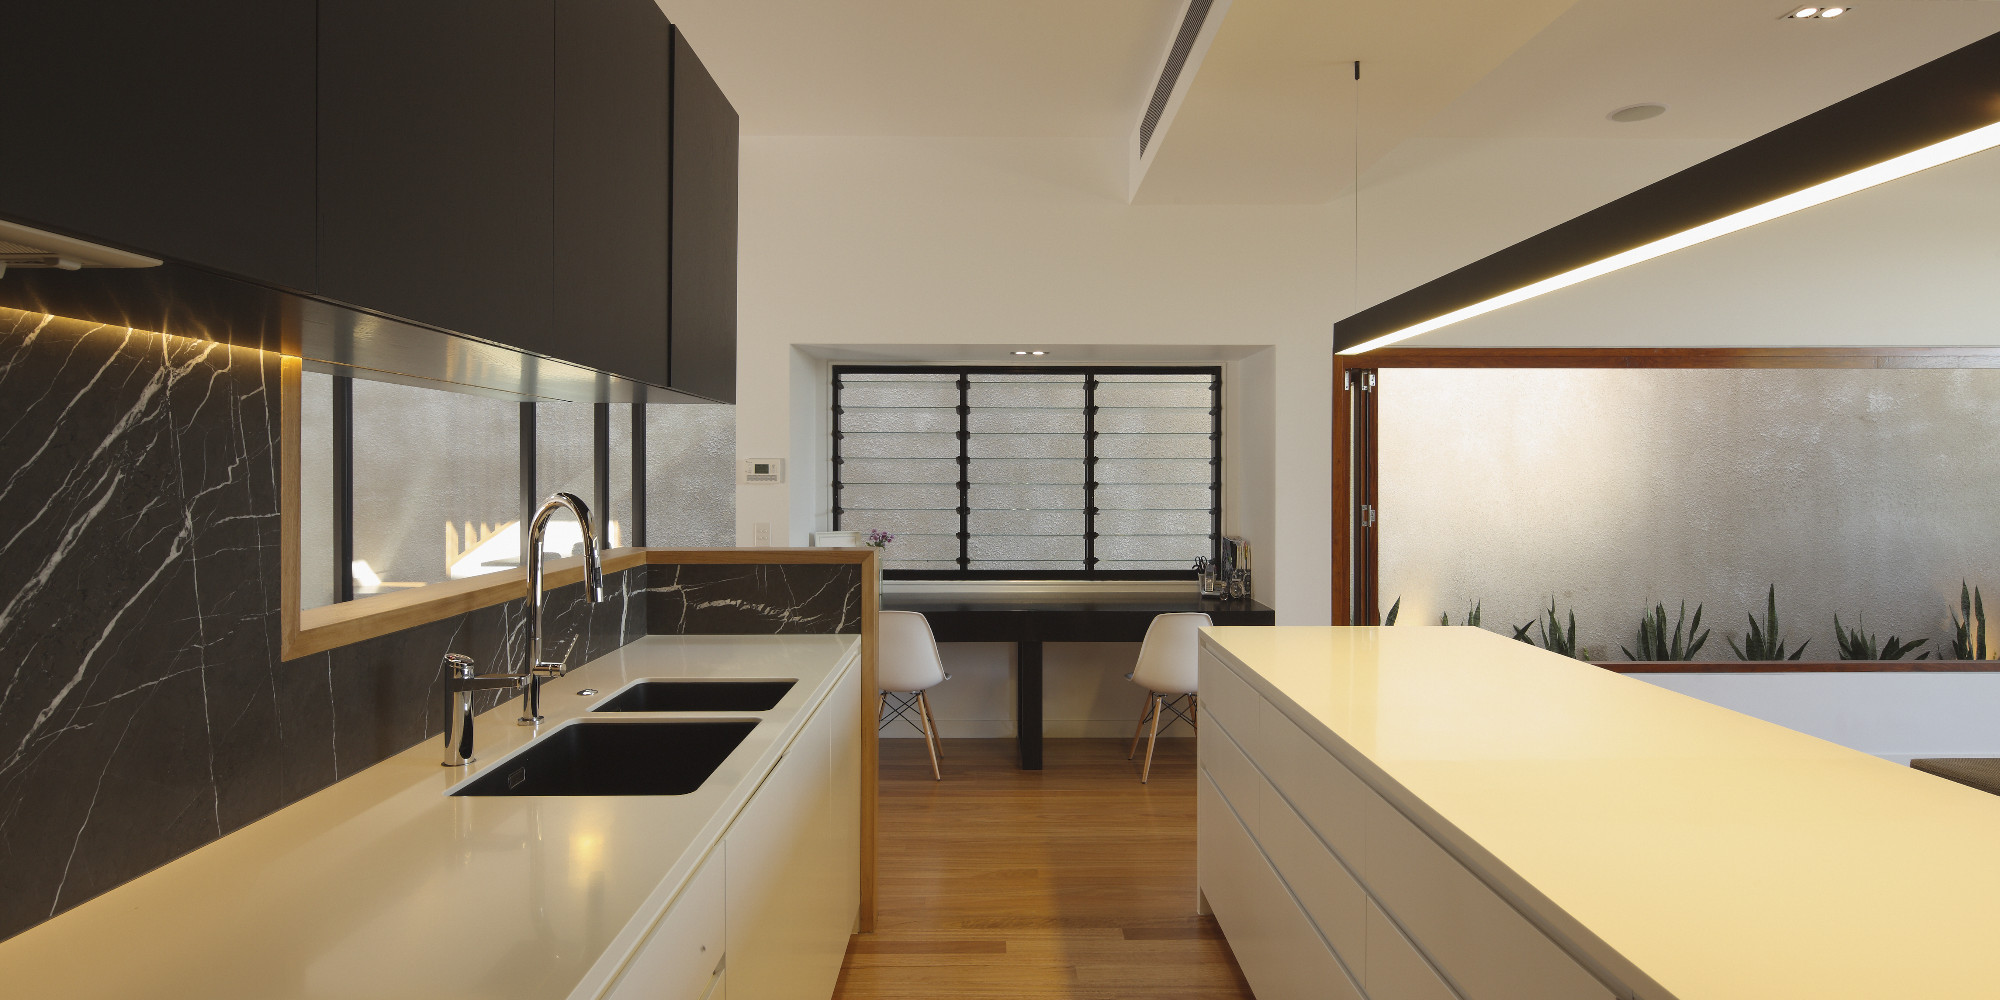 Kitchen designed by Shaun Lockyer, built by Kalka, Photography by Scott Burrows.